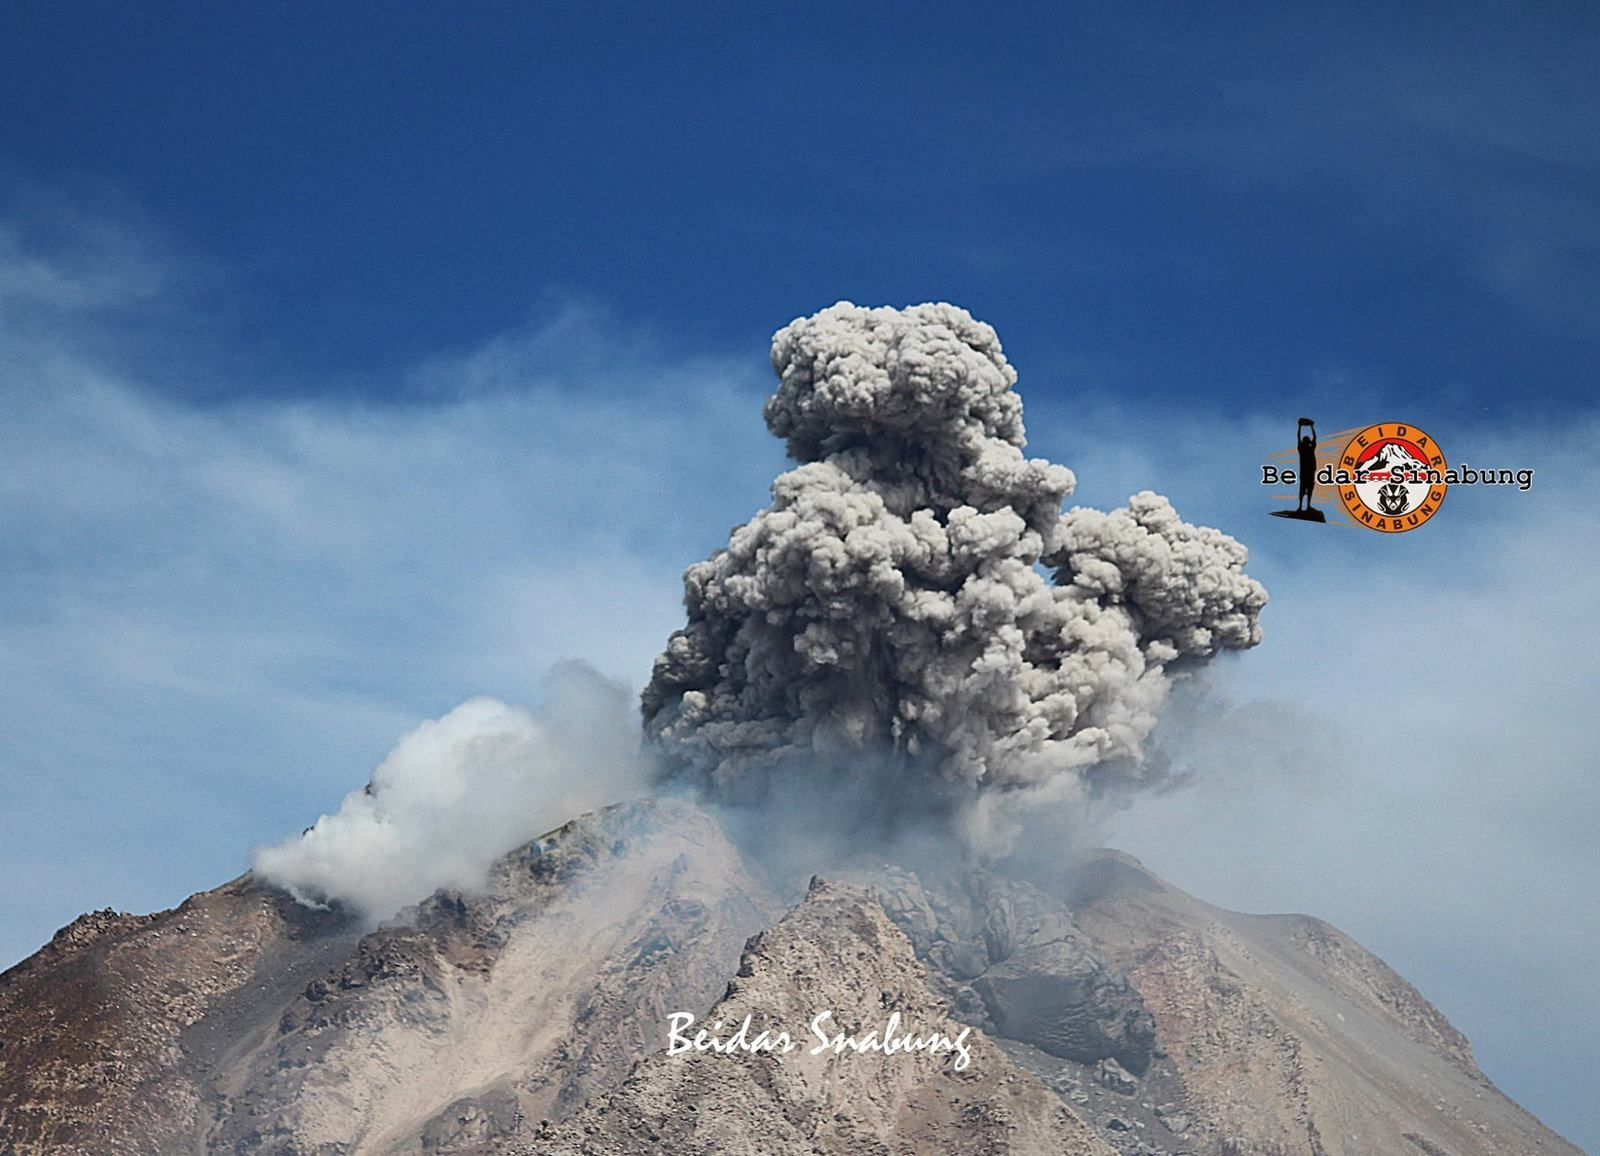 Sinabung - petite explosion sommitale - le 17.09.2016 / 10h07 WIB - photo Firdaus Surbakti / Beidar Sinabung